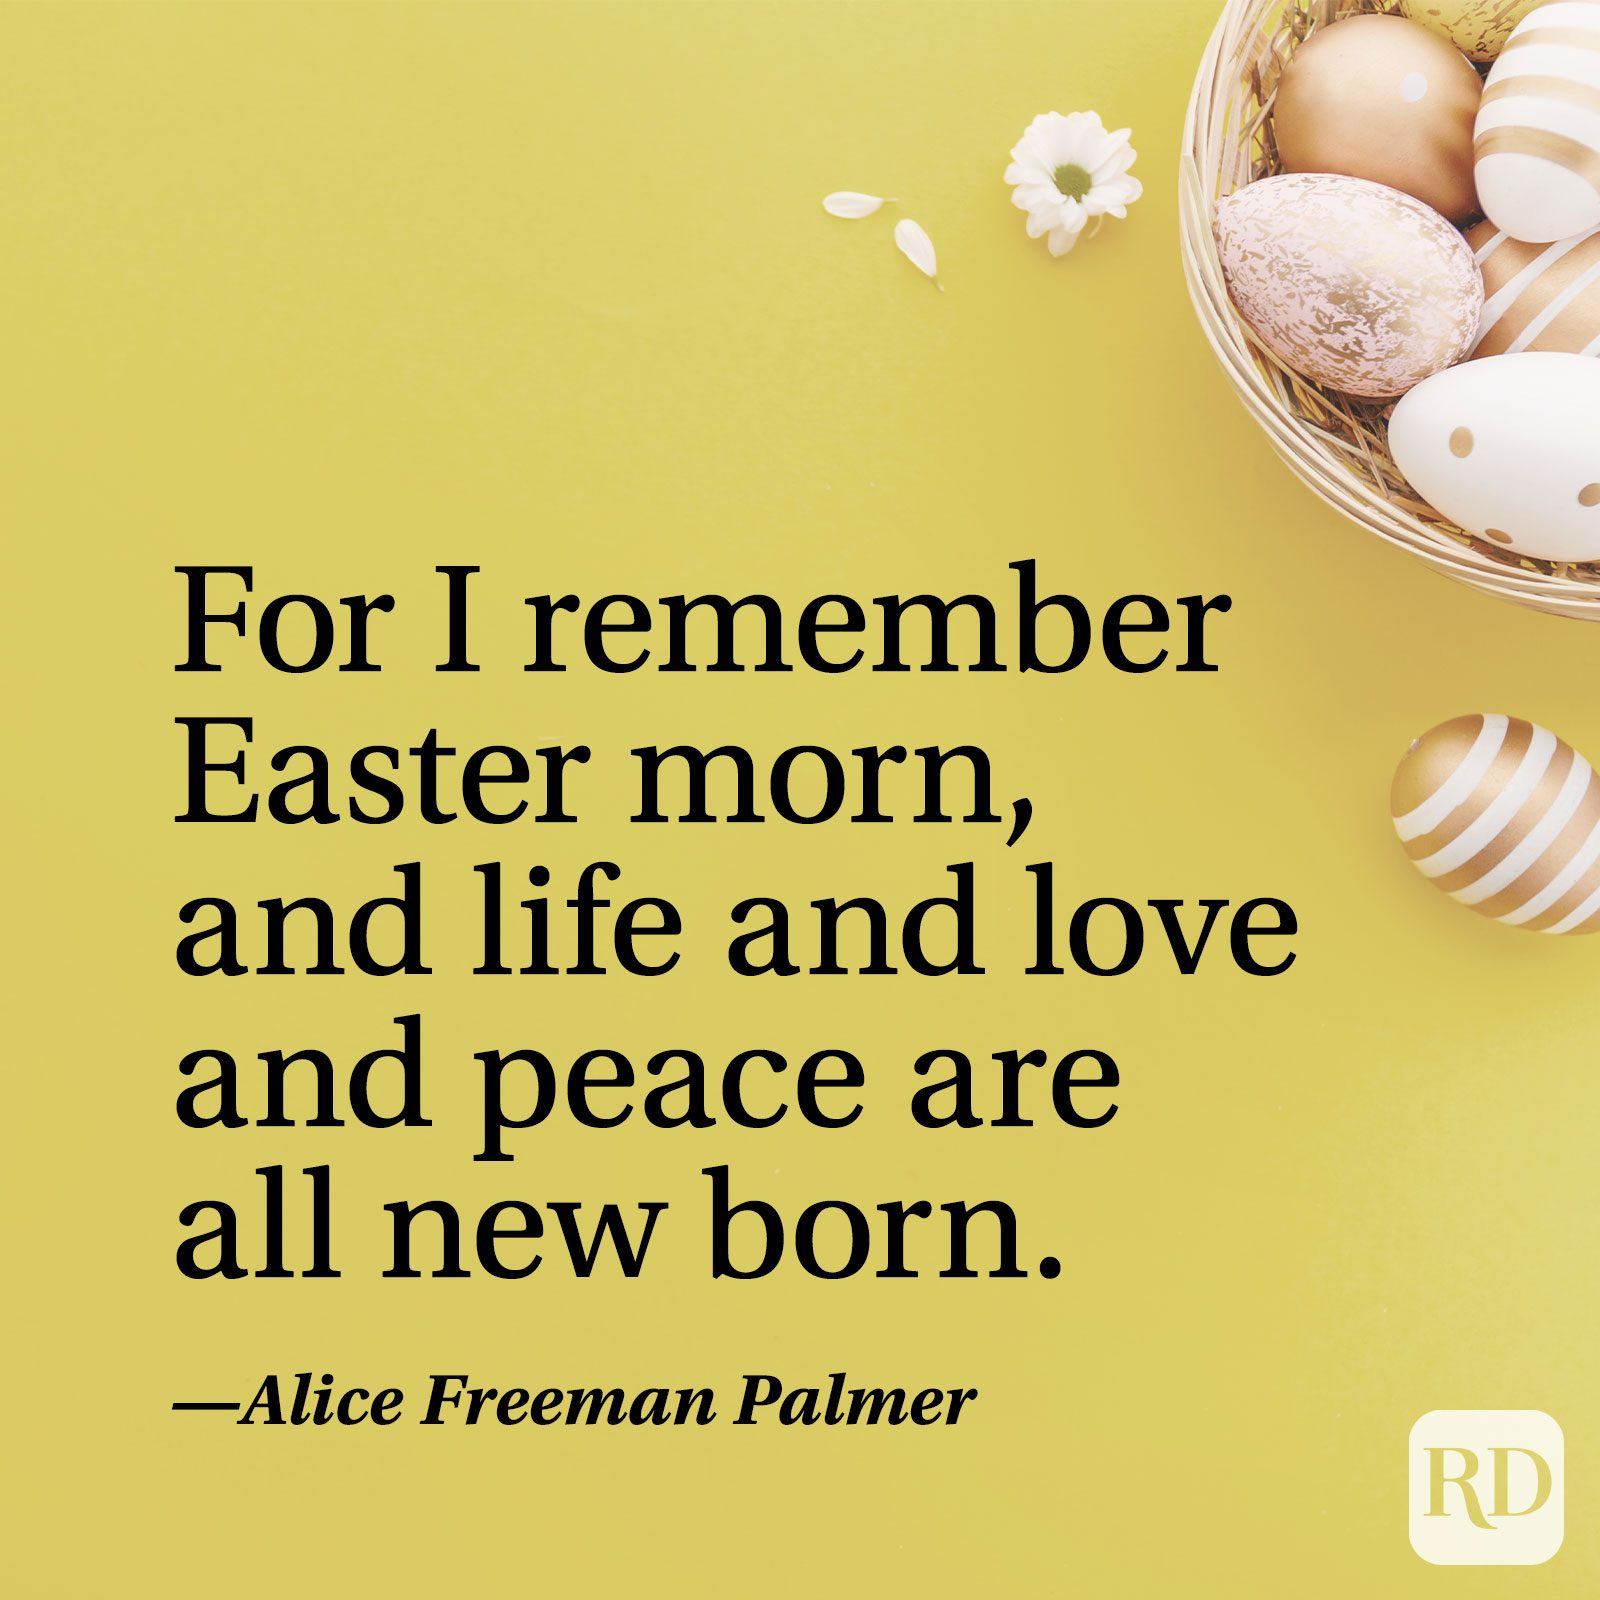 """For I remember Easter morn, and life and love and peace are all new born."" — Alice Freeman Palmer"